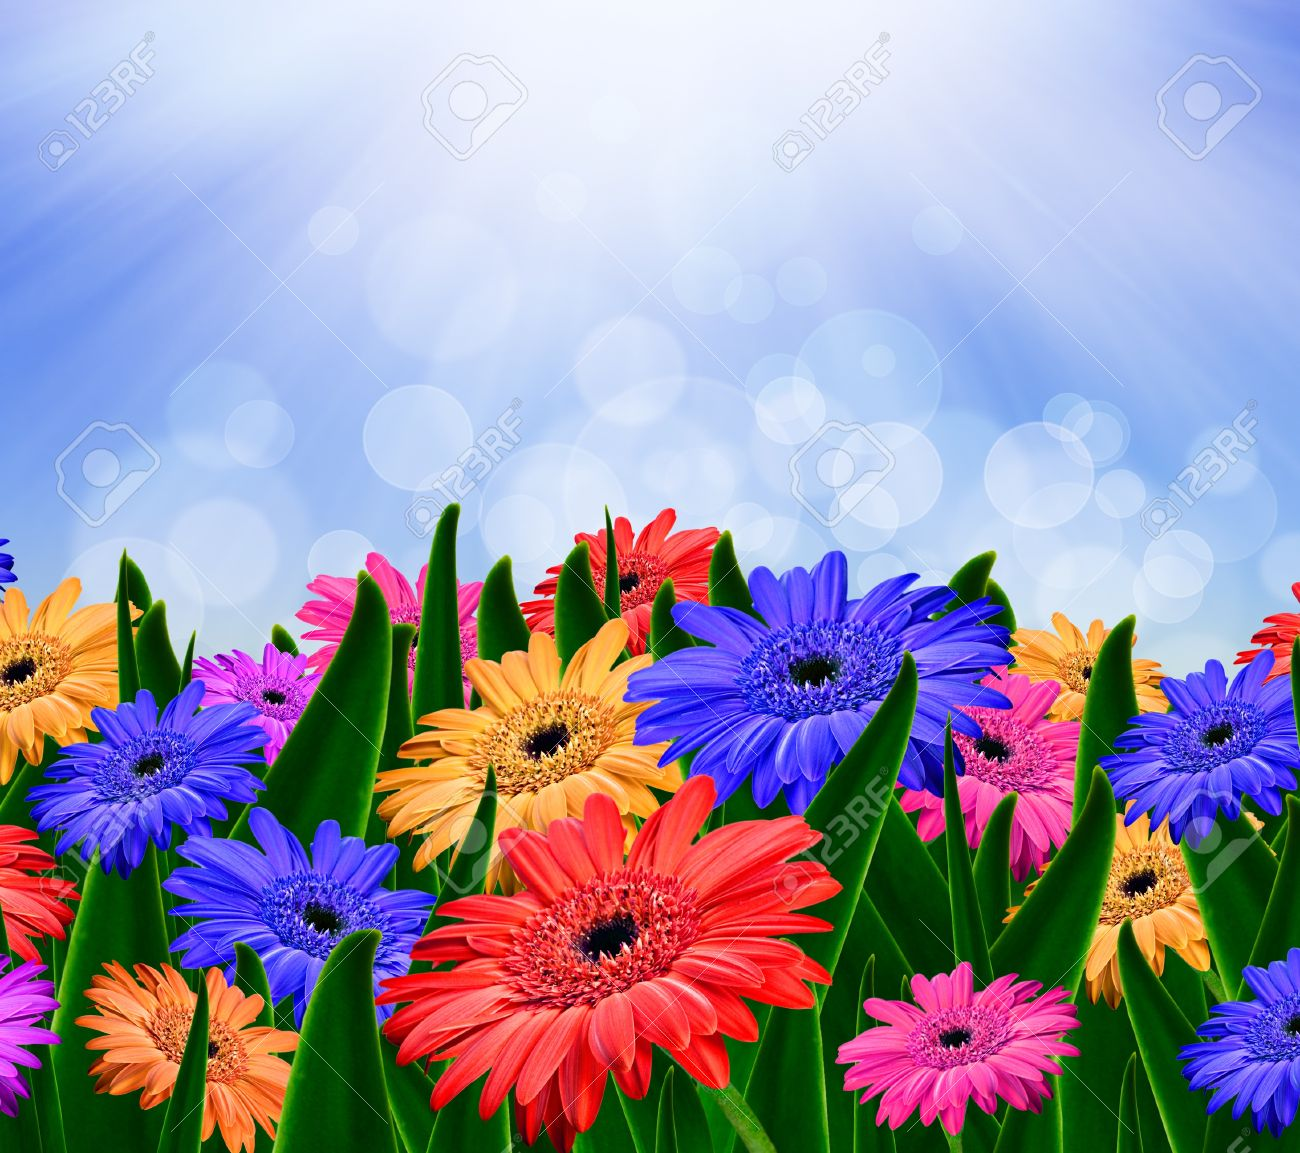 colorful daisy gerbera flowers in a field spring background